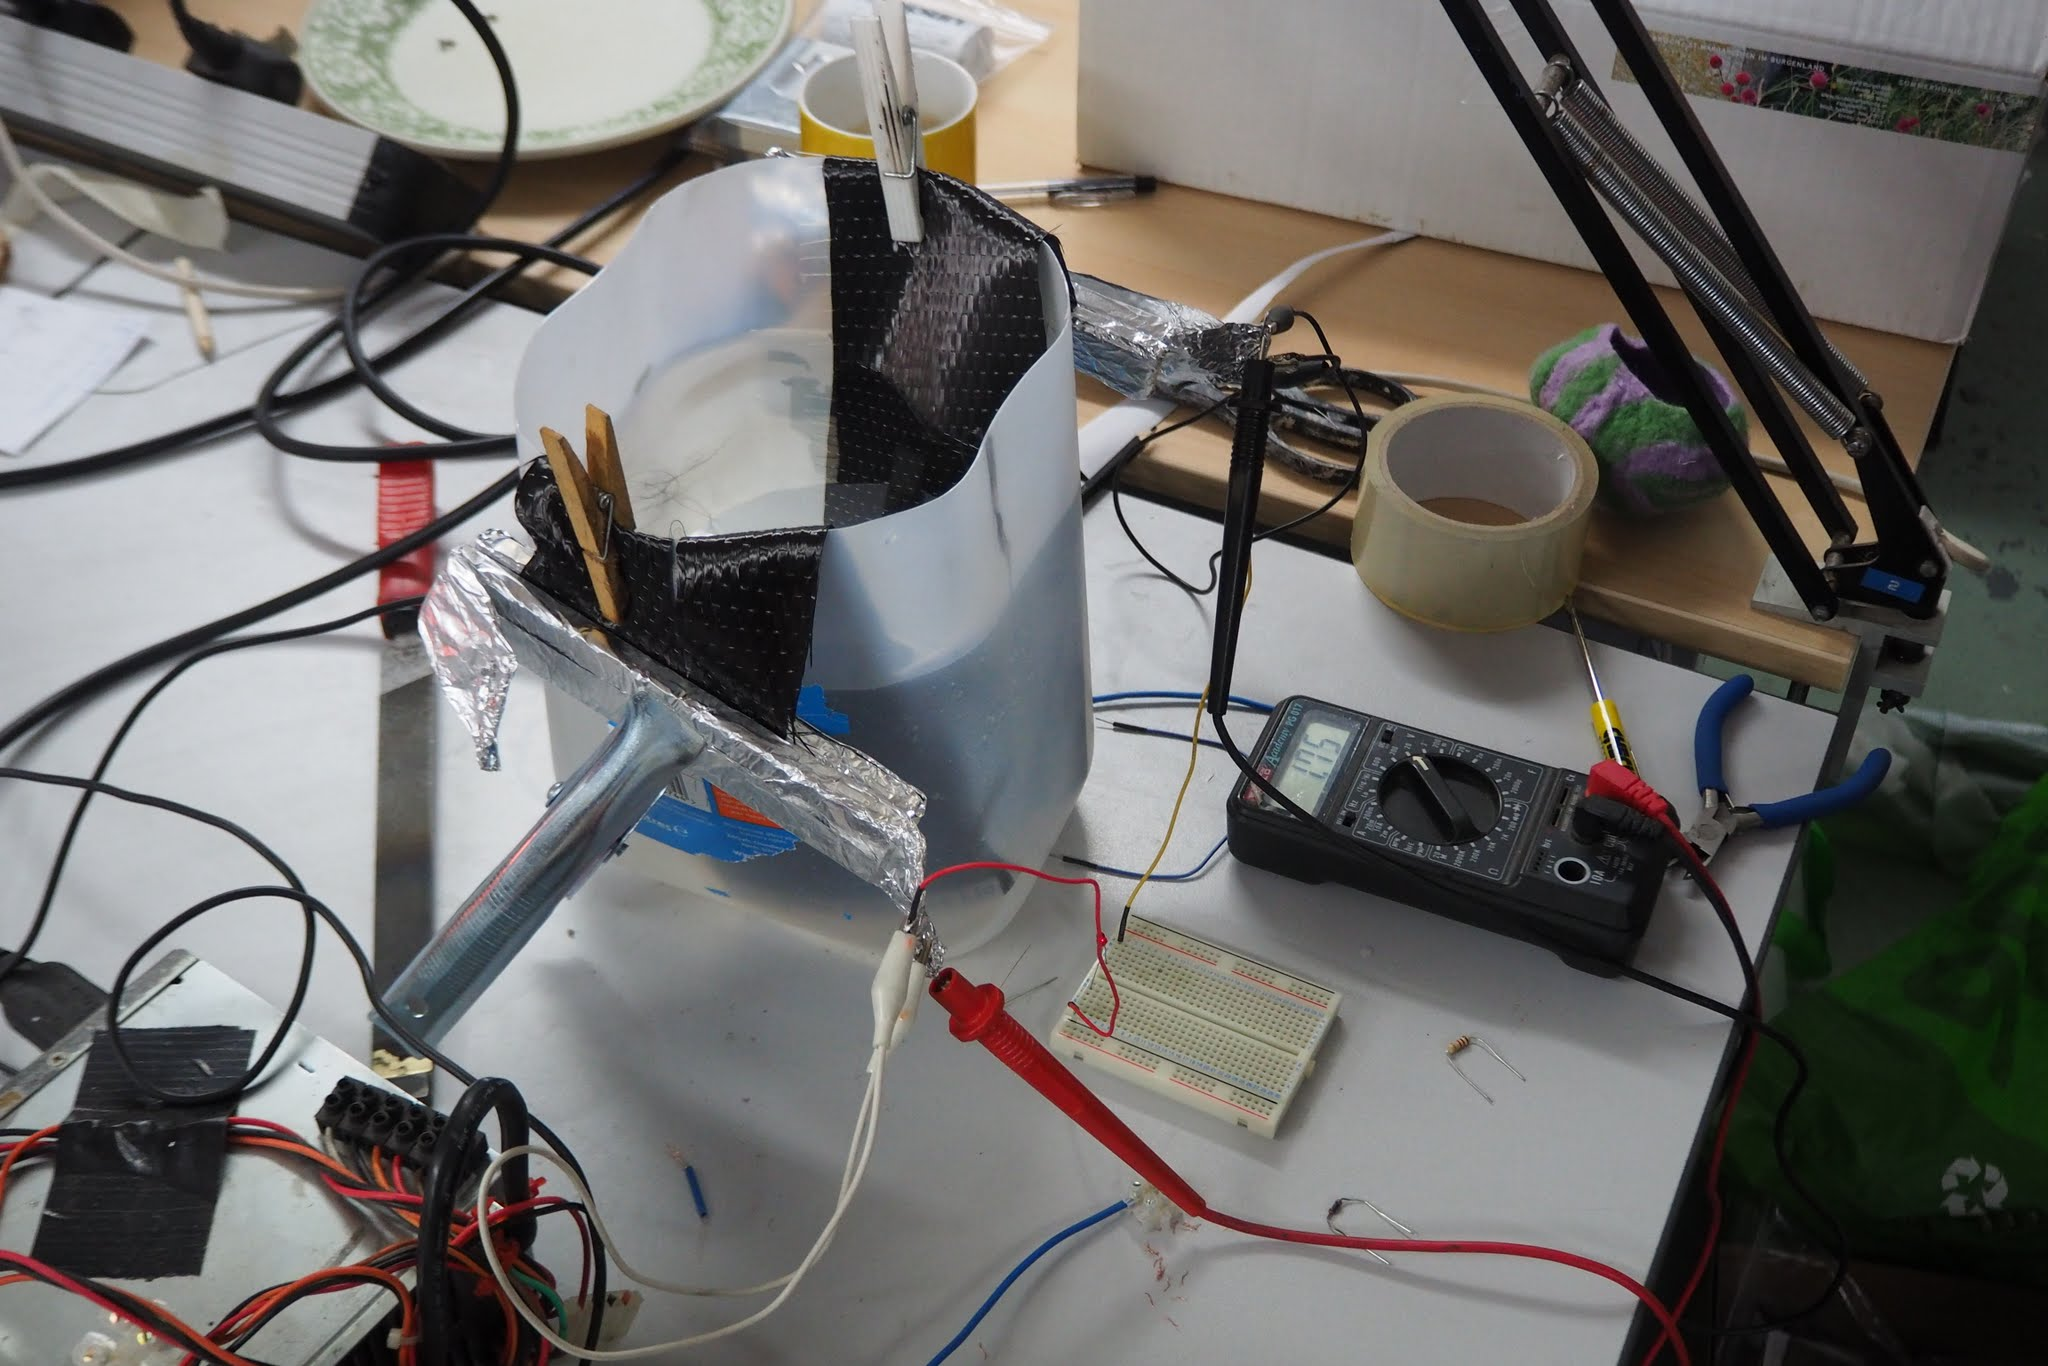 John W's graphite supercapacitor test rig